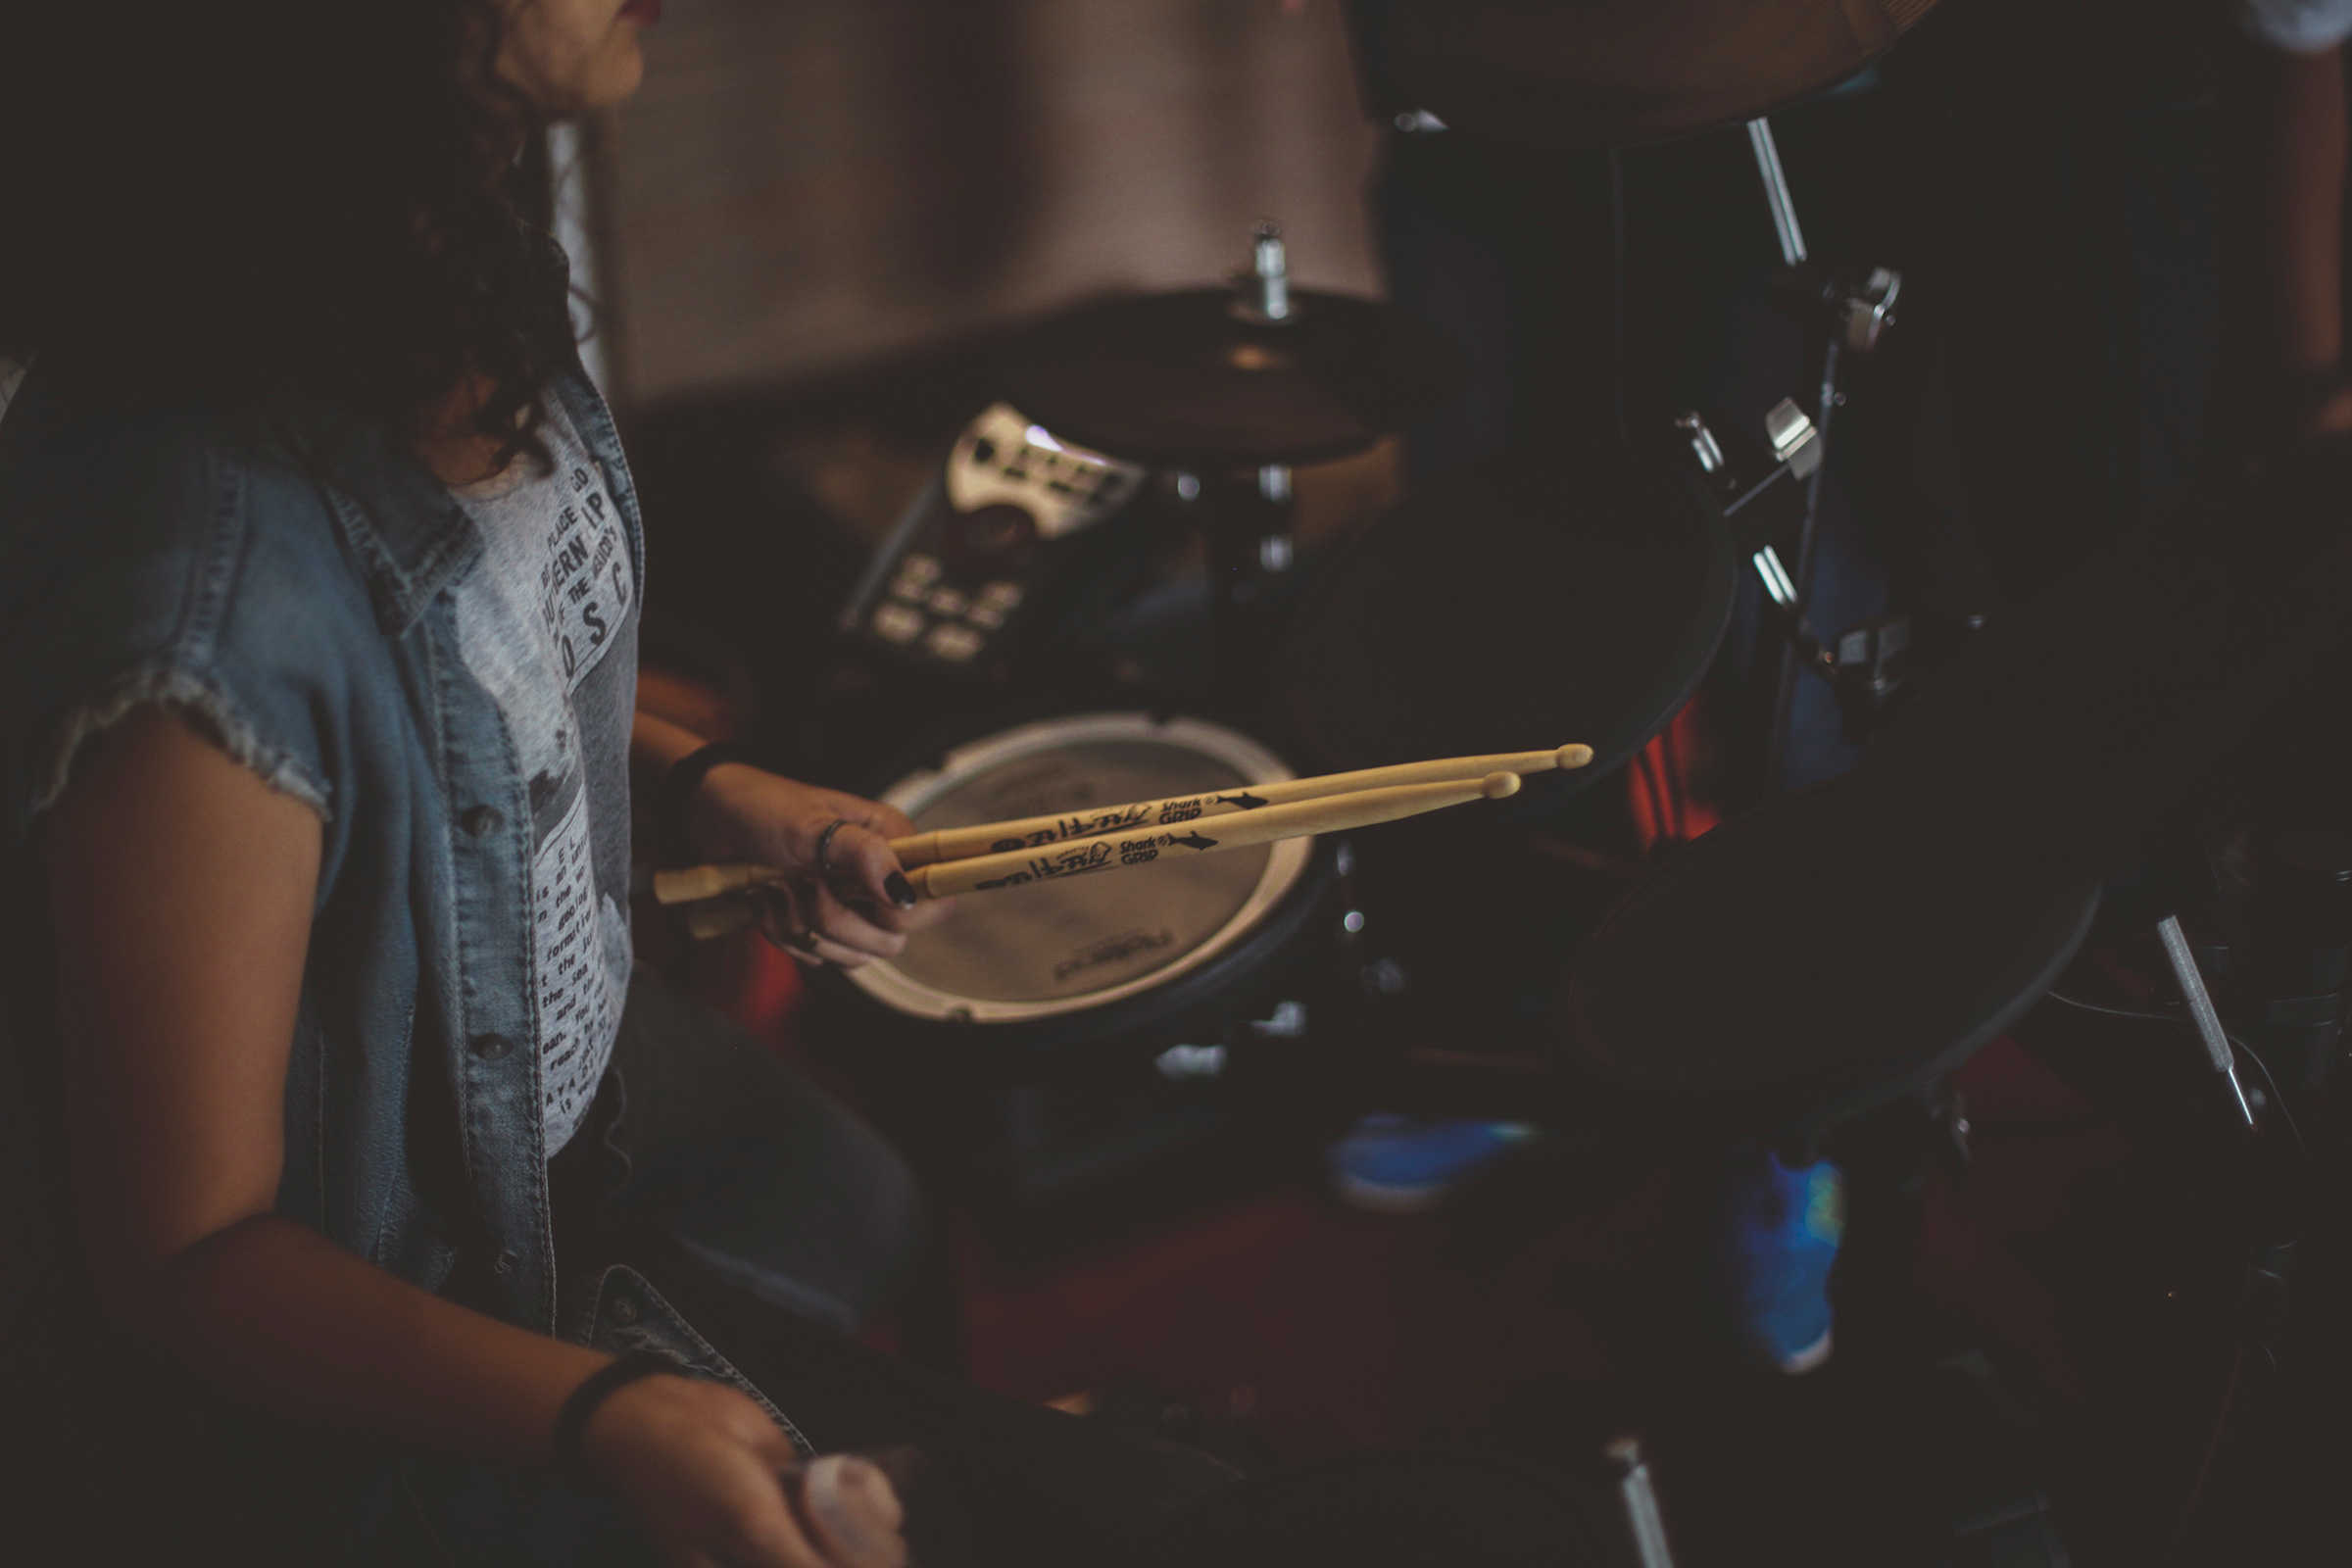 The Passion of Playing Music